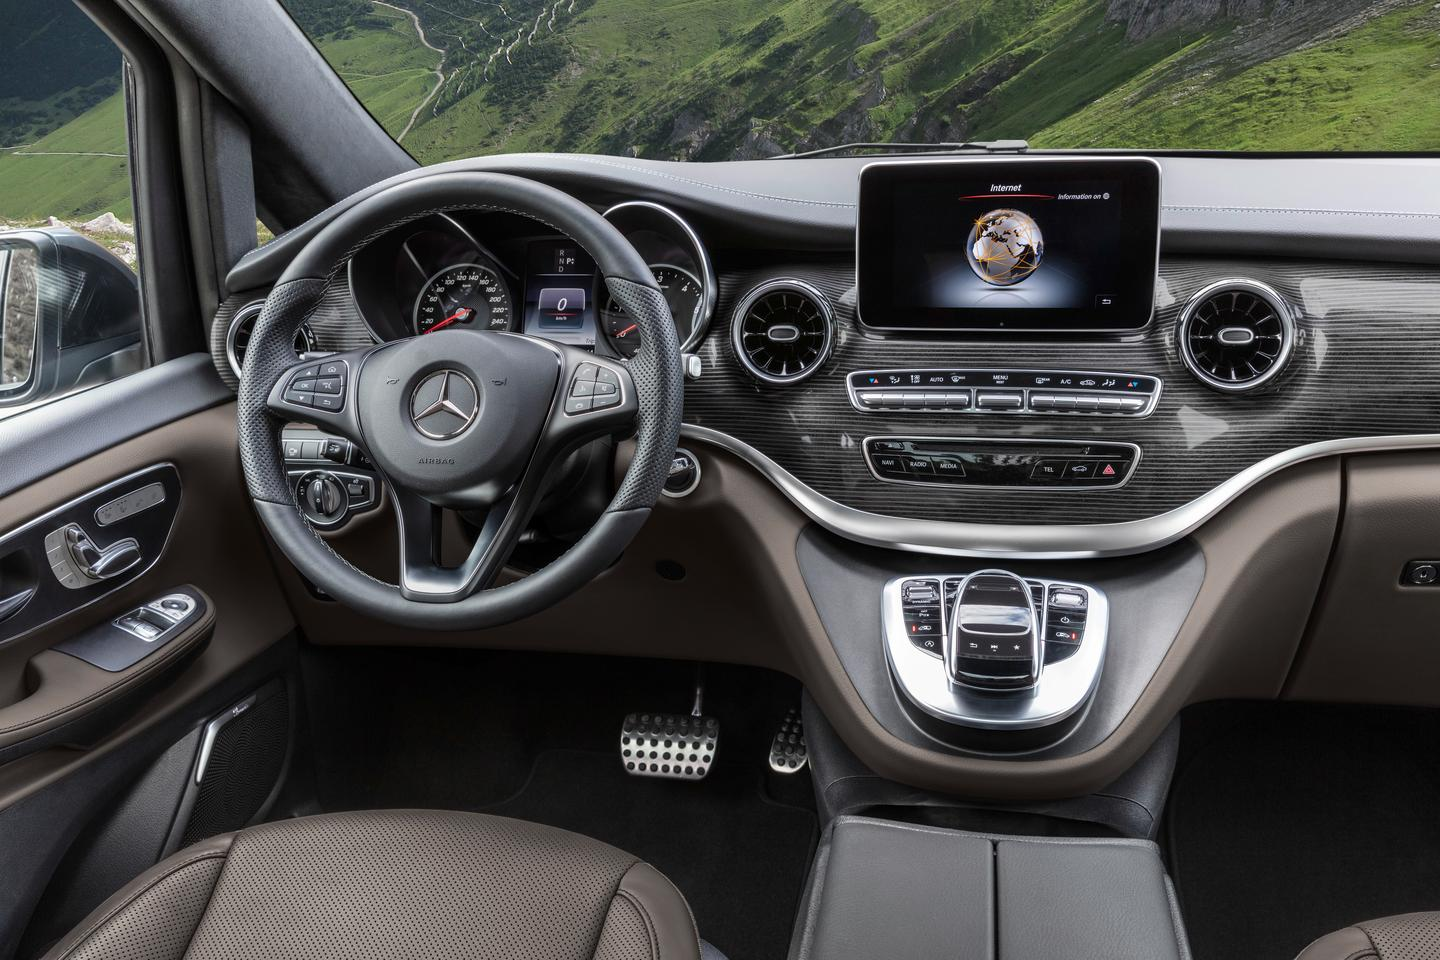 Inside, the V-Class features redesigned vents and plenty of upholstery and trim options